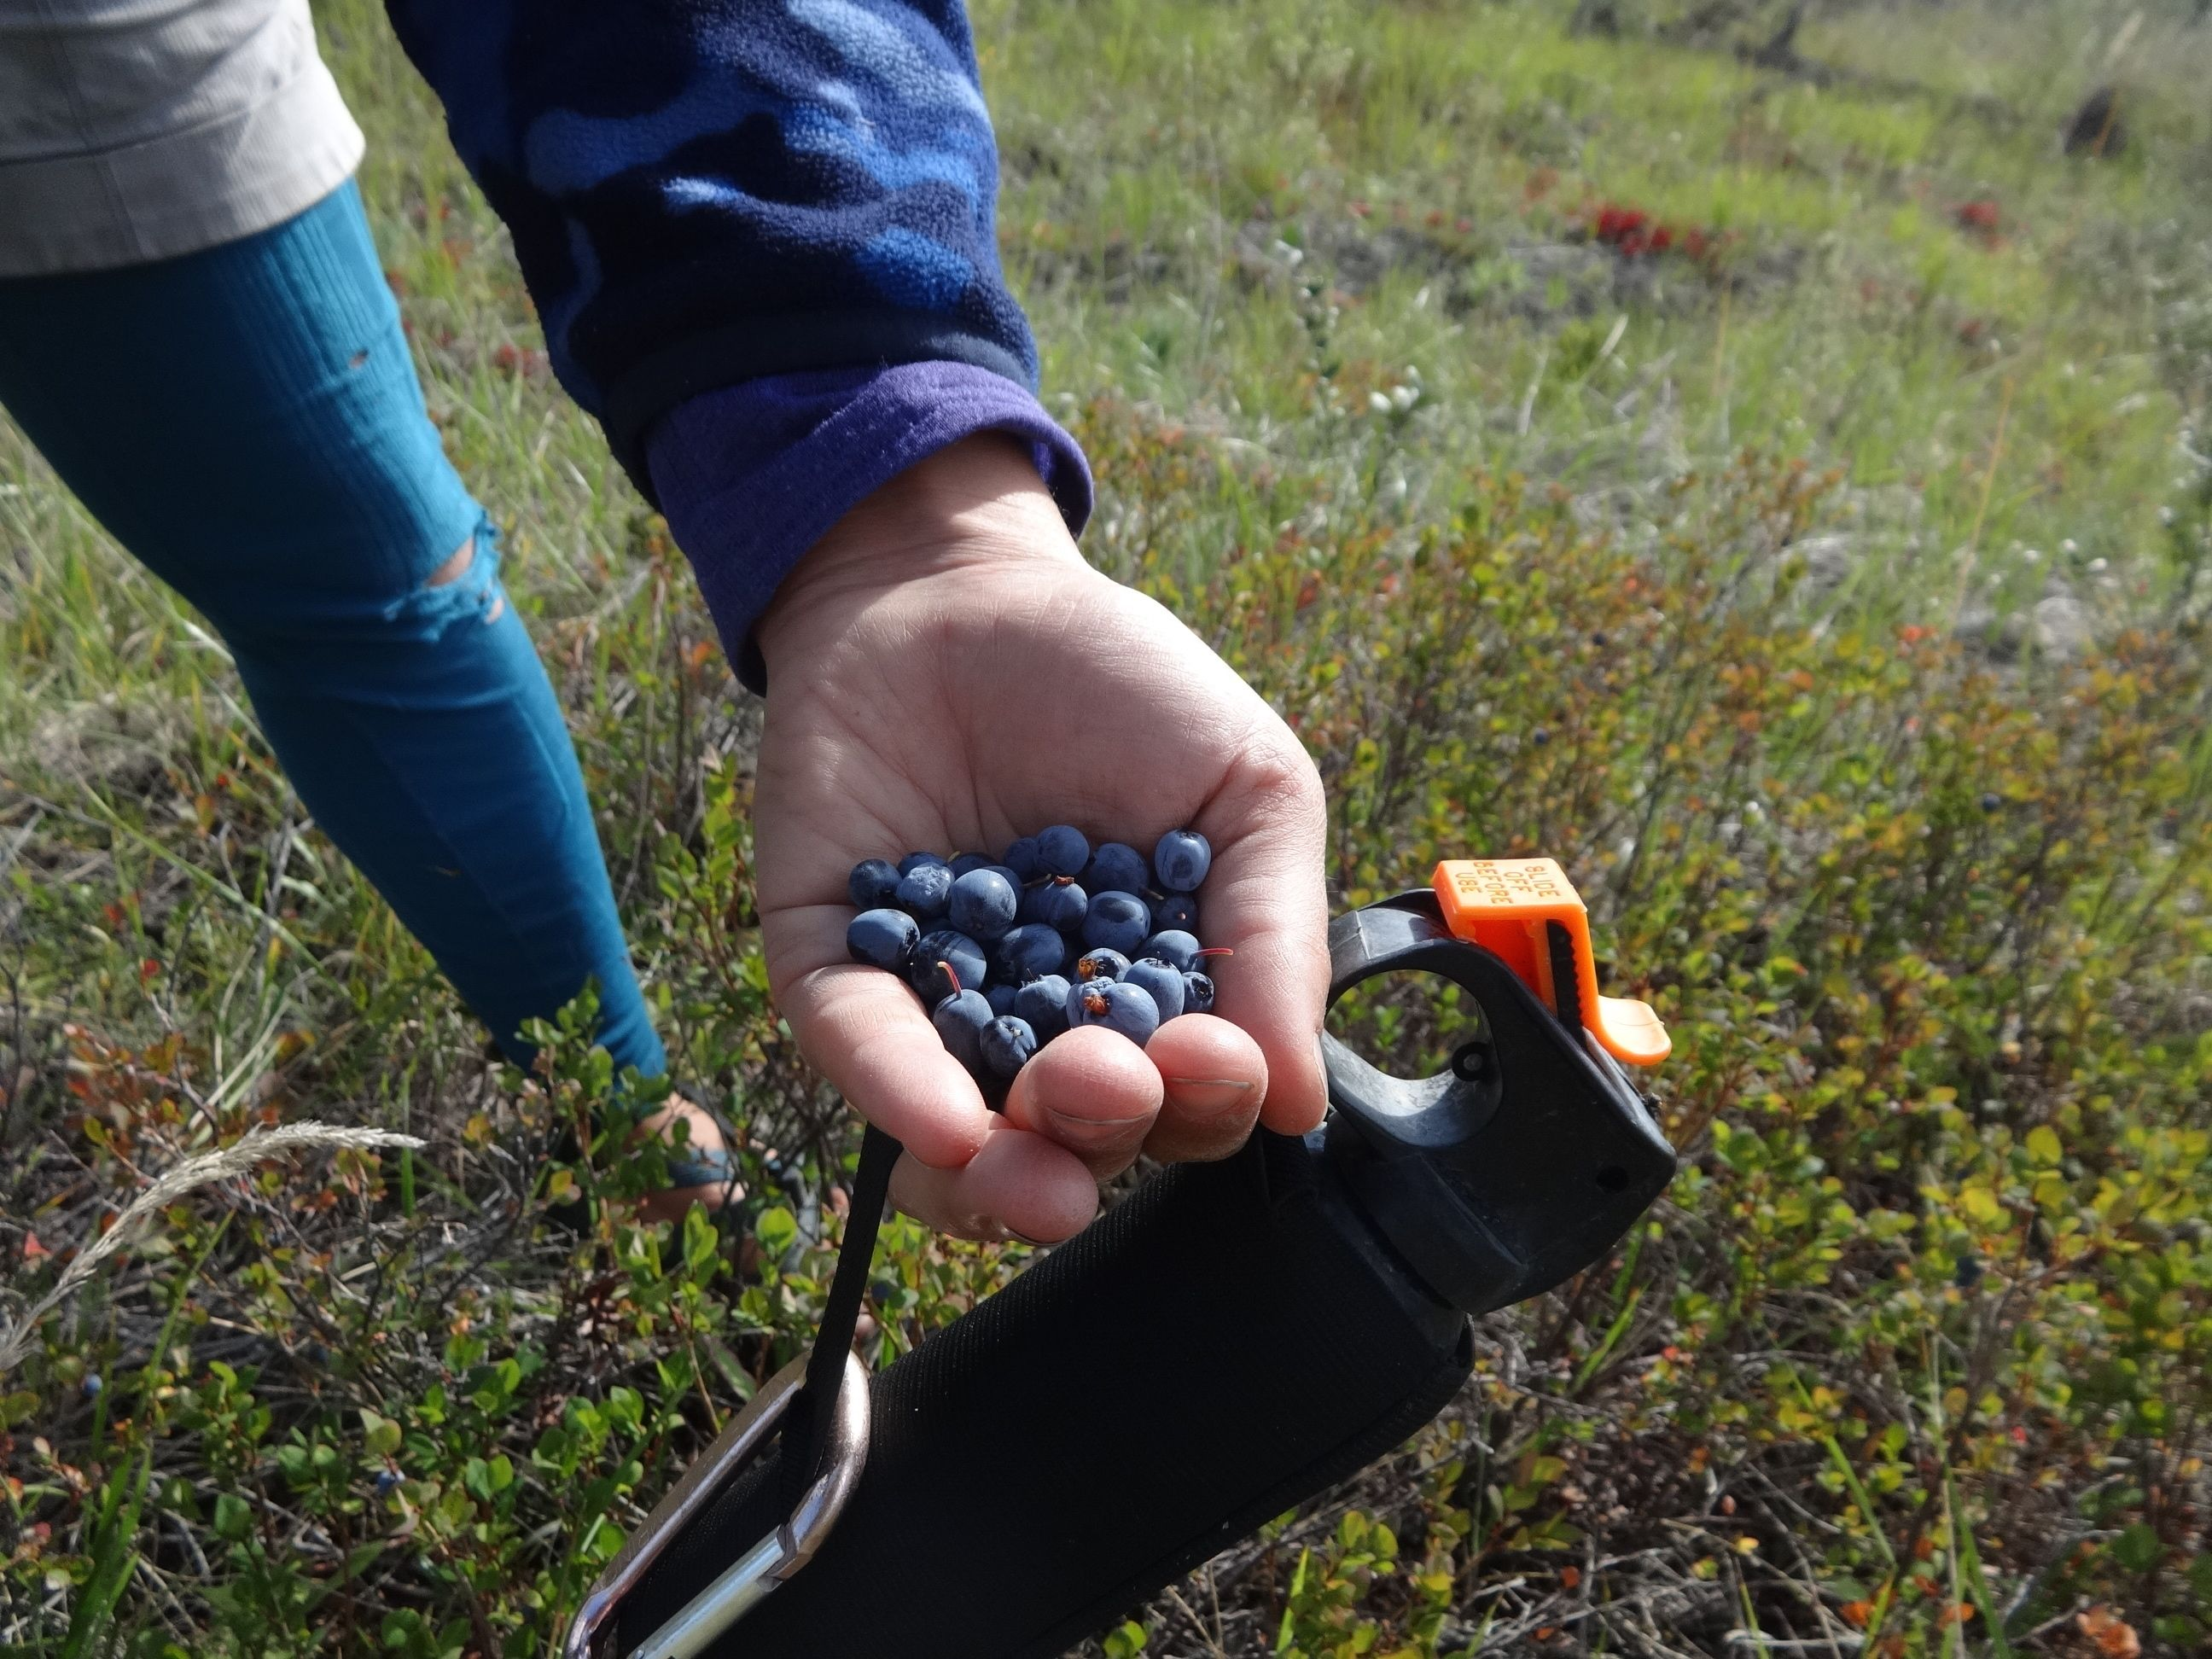 bear spray and berries